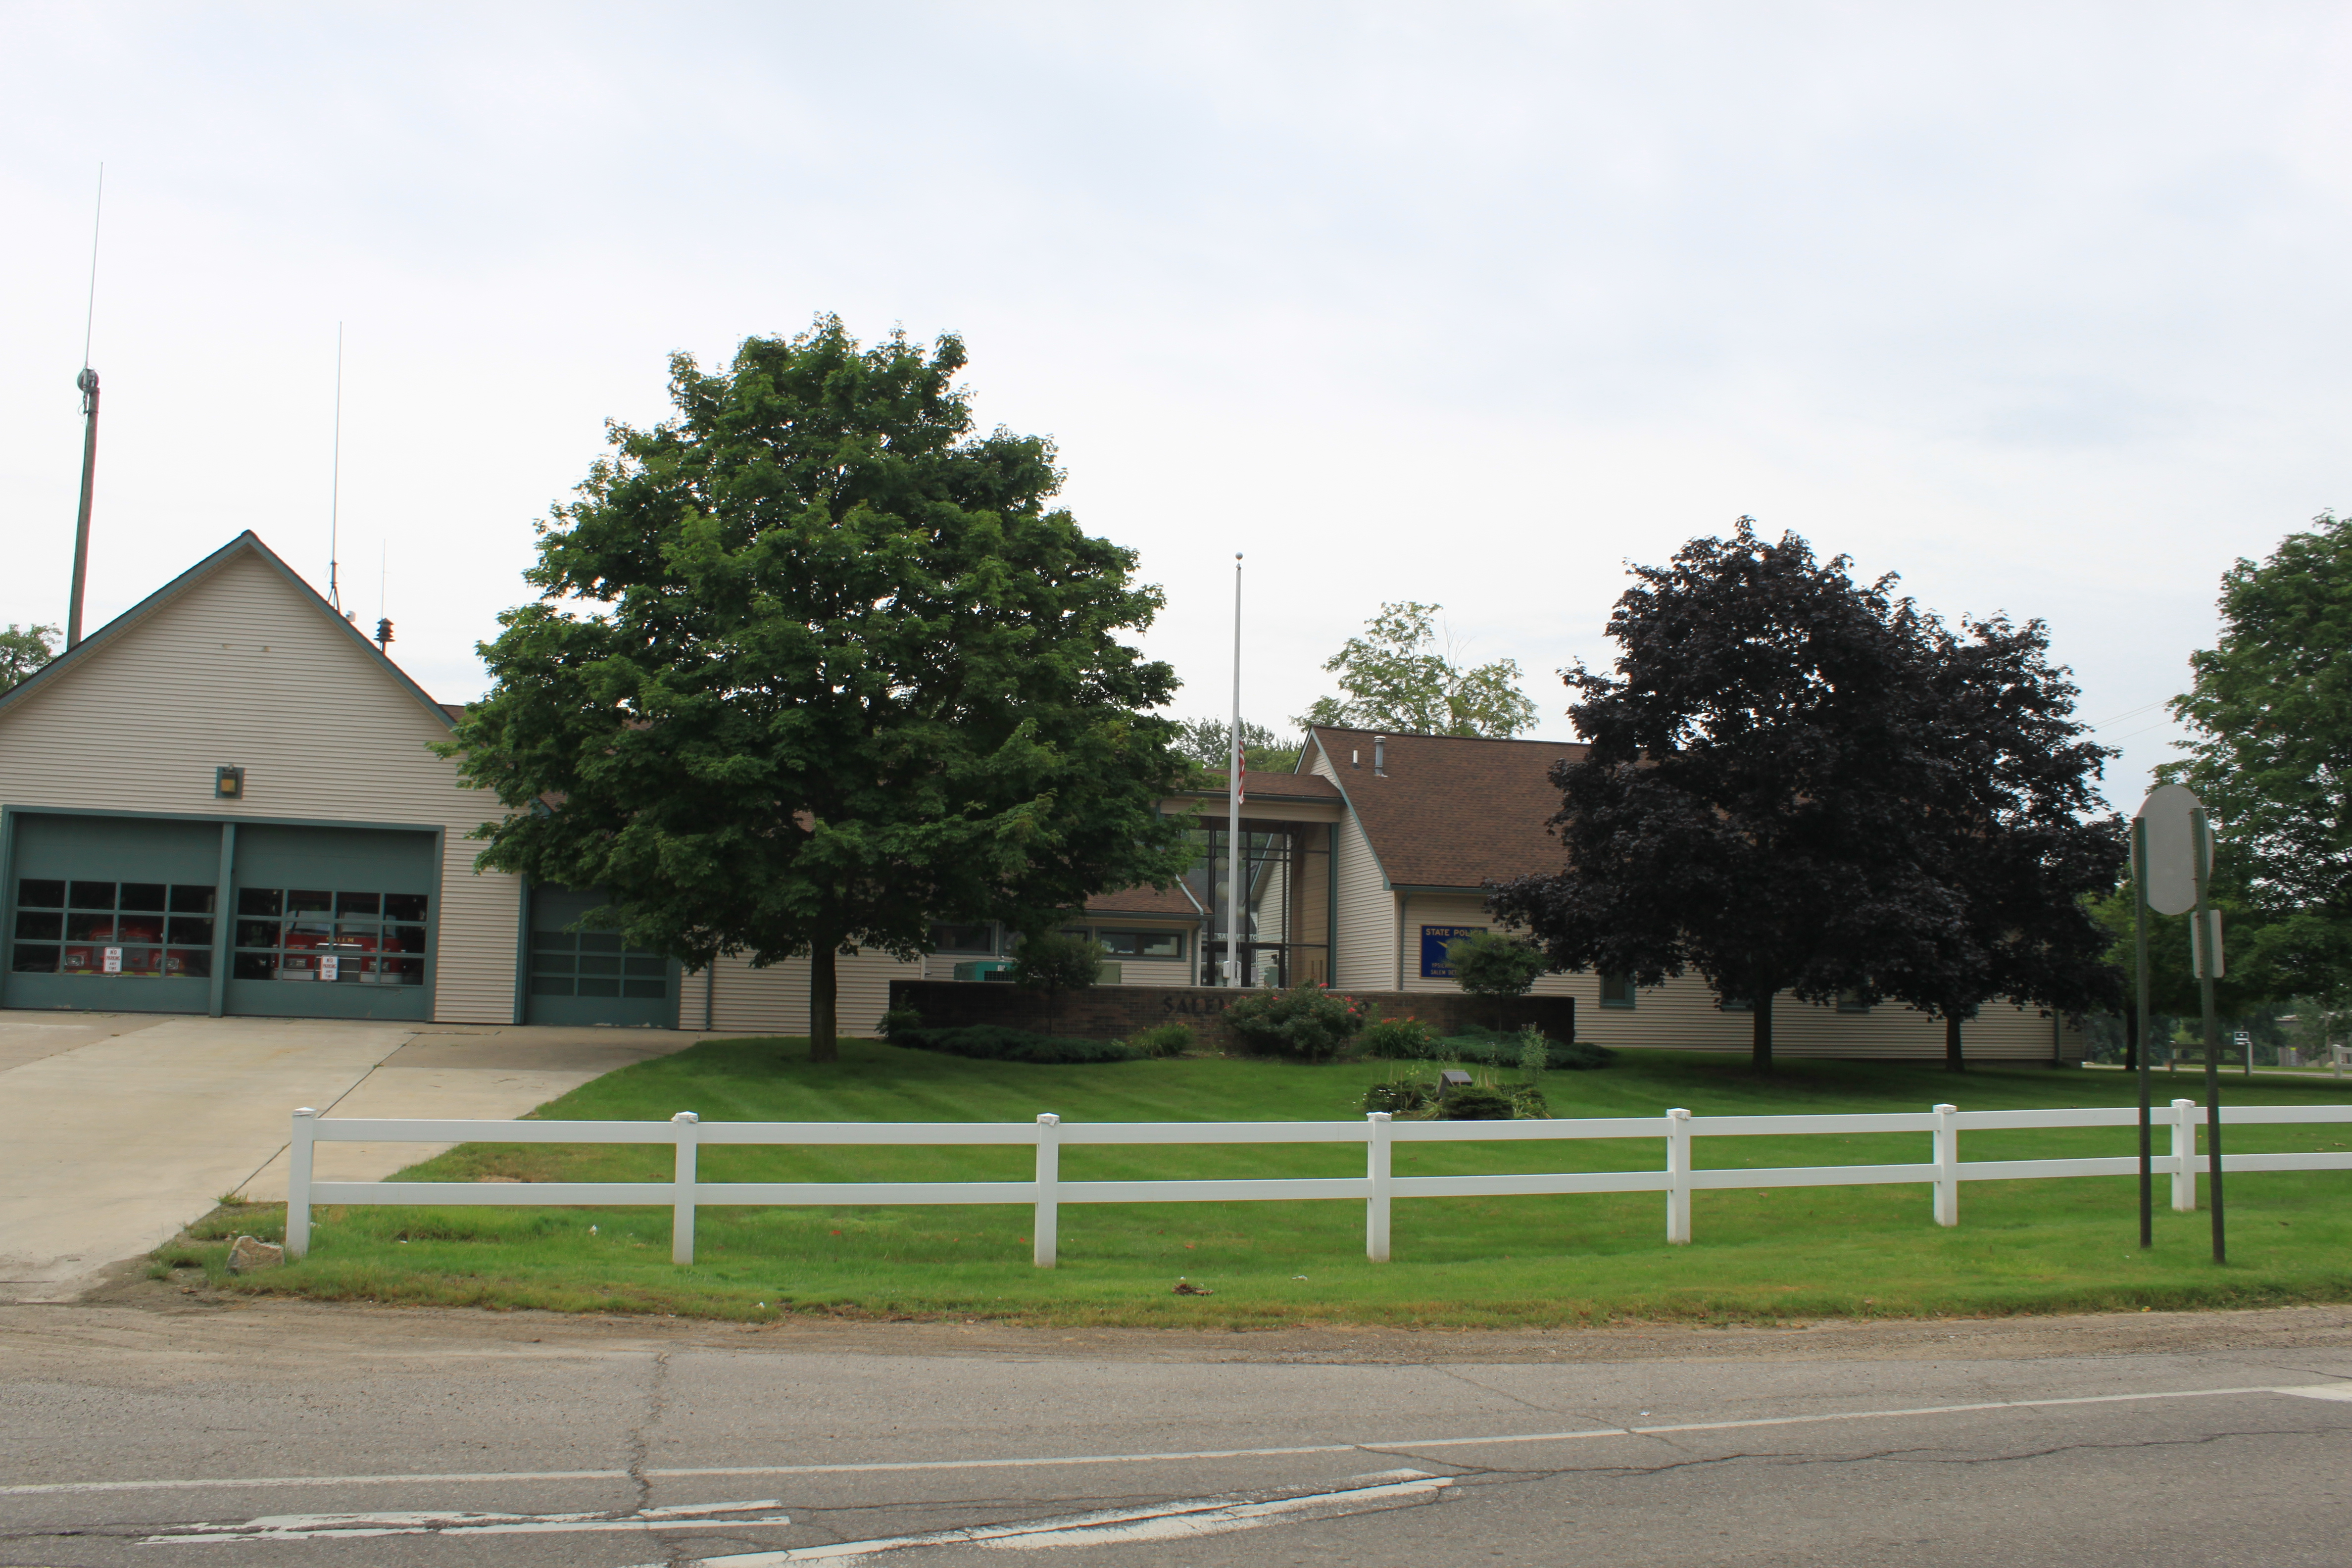 File:Salem Township Hall.JPG - Wikipedia, the free encyclopediapictures